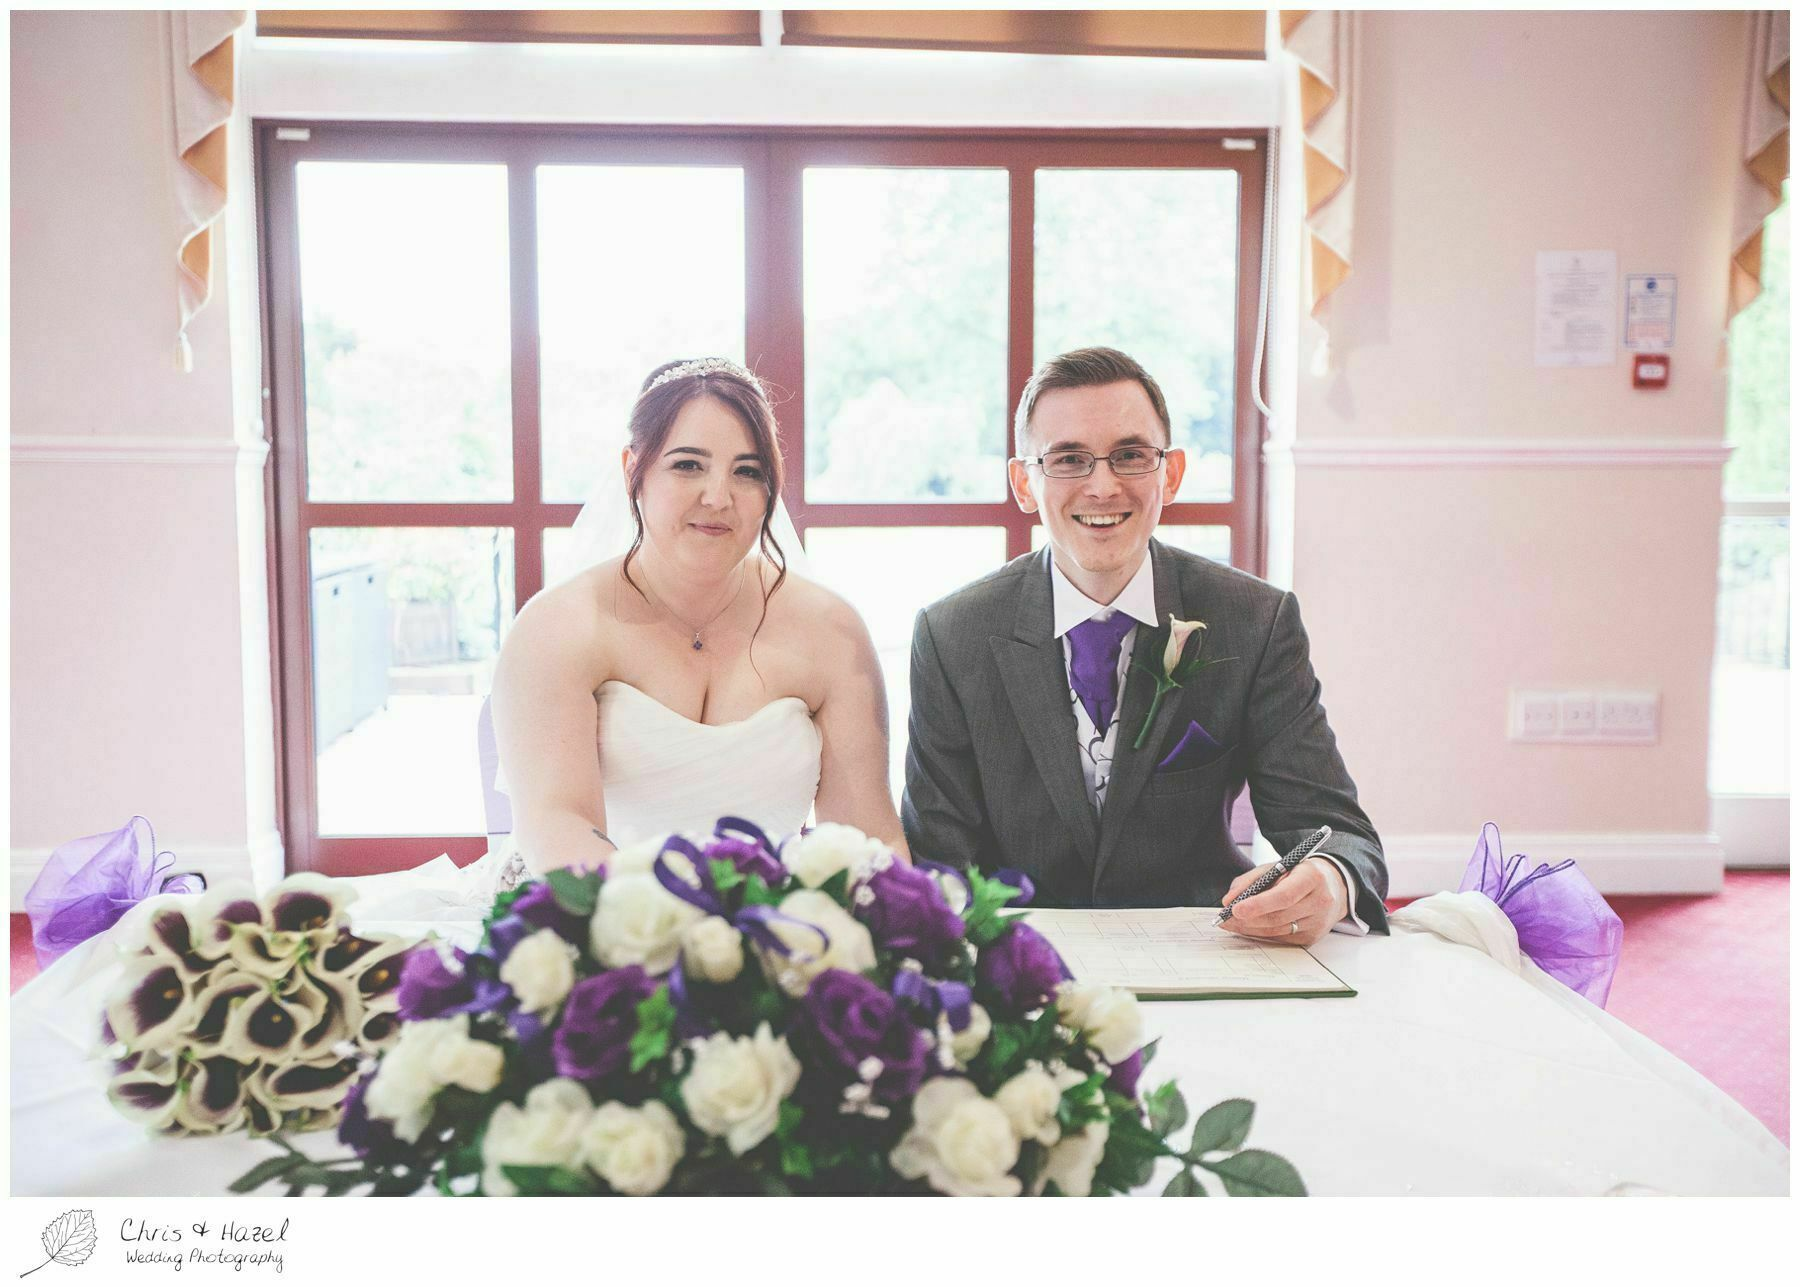 signing of register, bagden hall wedding venue, documentary wedding photography, denny dale, huddersfield, Wedding Photographer, Bagden Hall, Wedding Photography, Chris and Hazel Wedding Photography, Alex tomenson, Vicky hunt